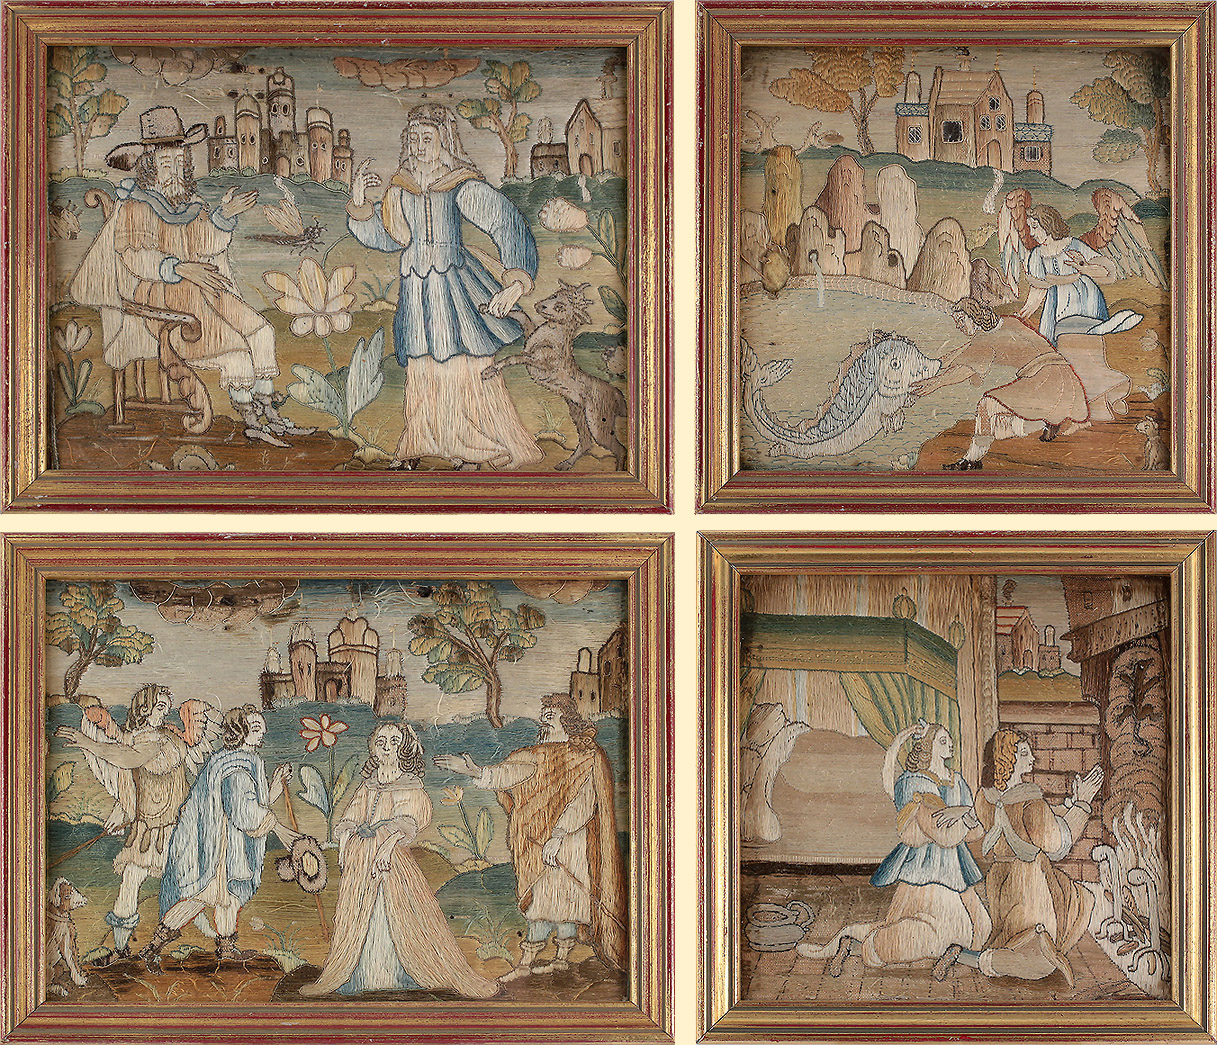 Set of 4 17th century silkwork panels illustrating Tobias, from the Book of Tobit